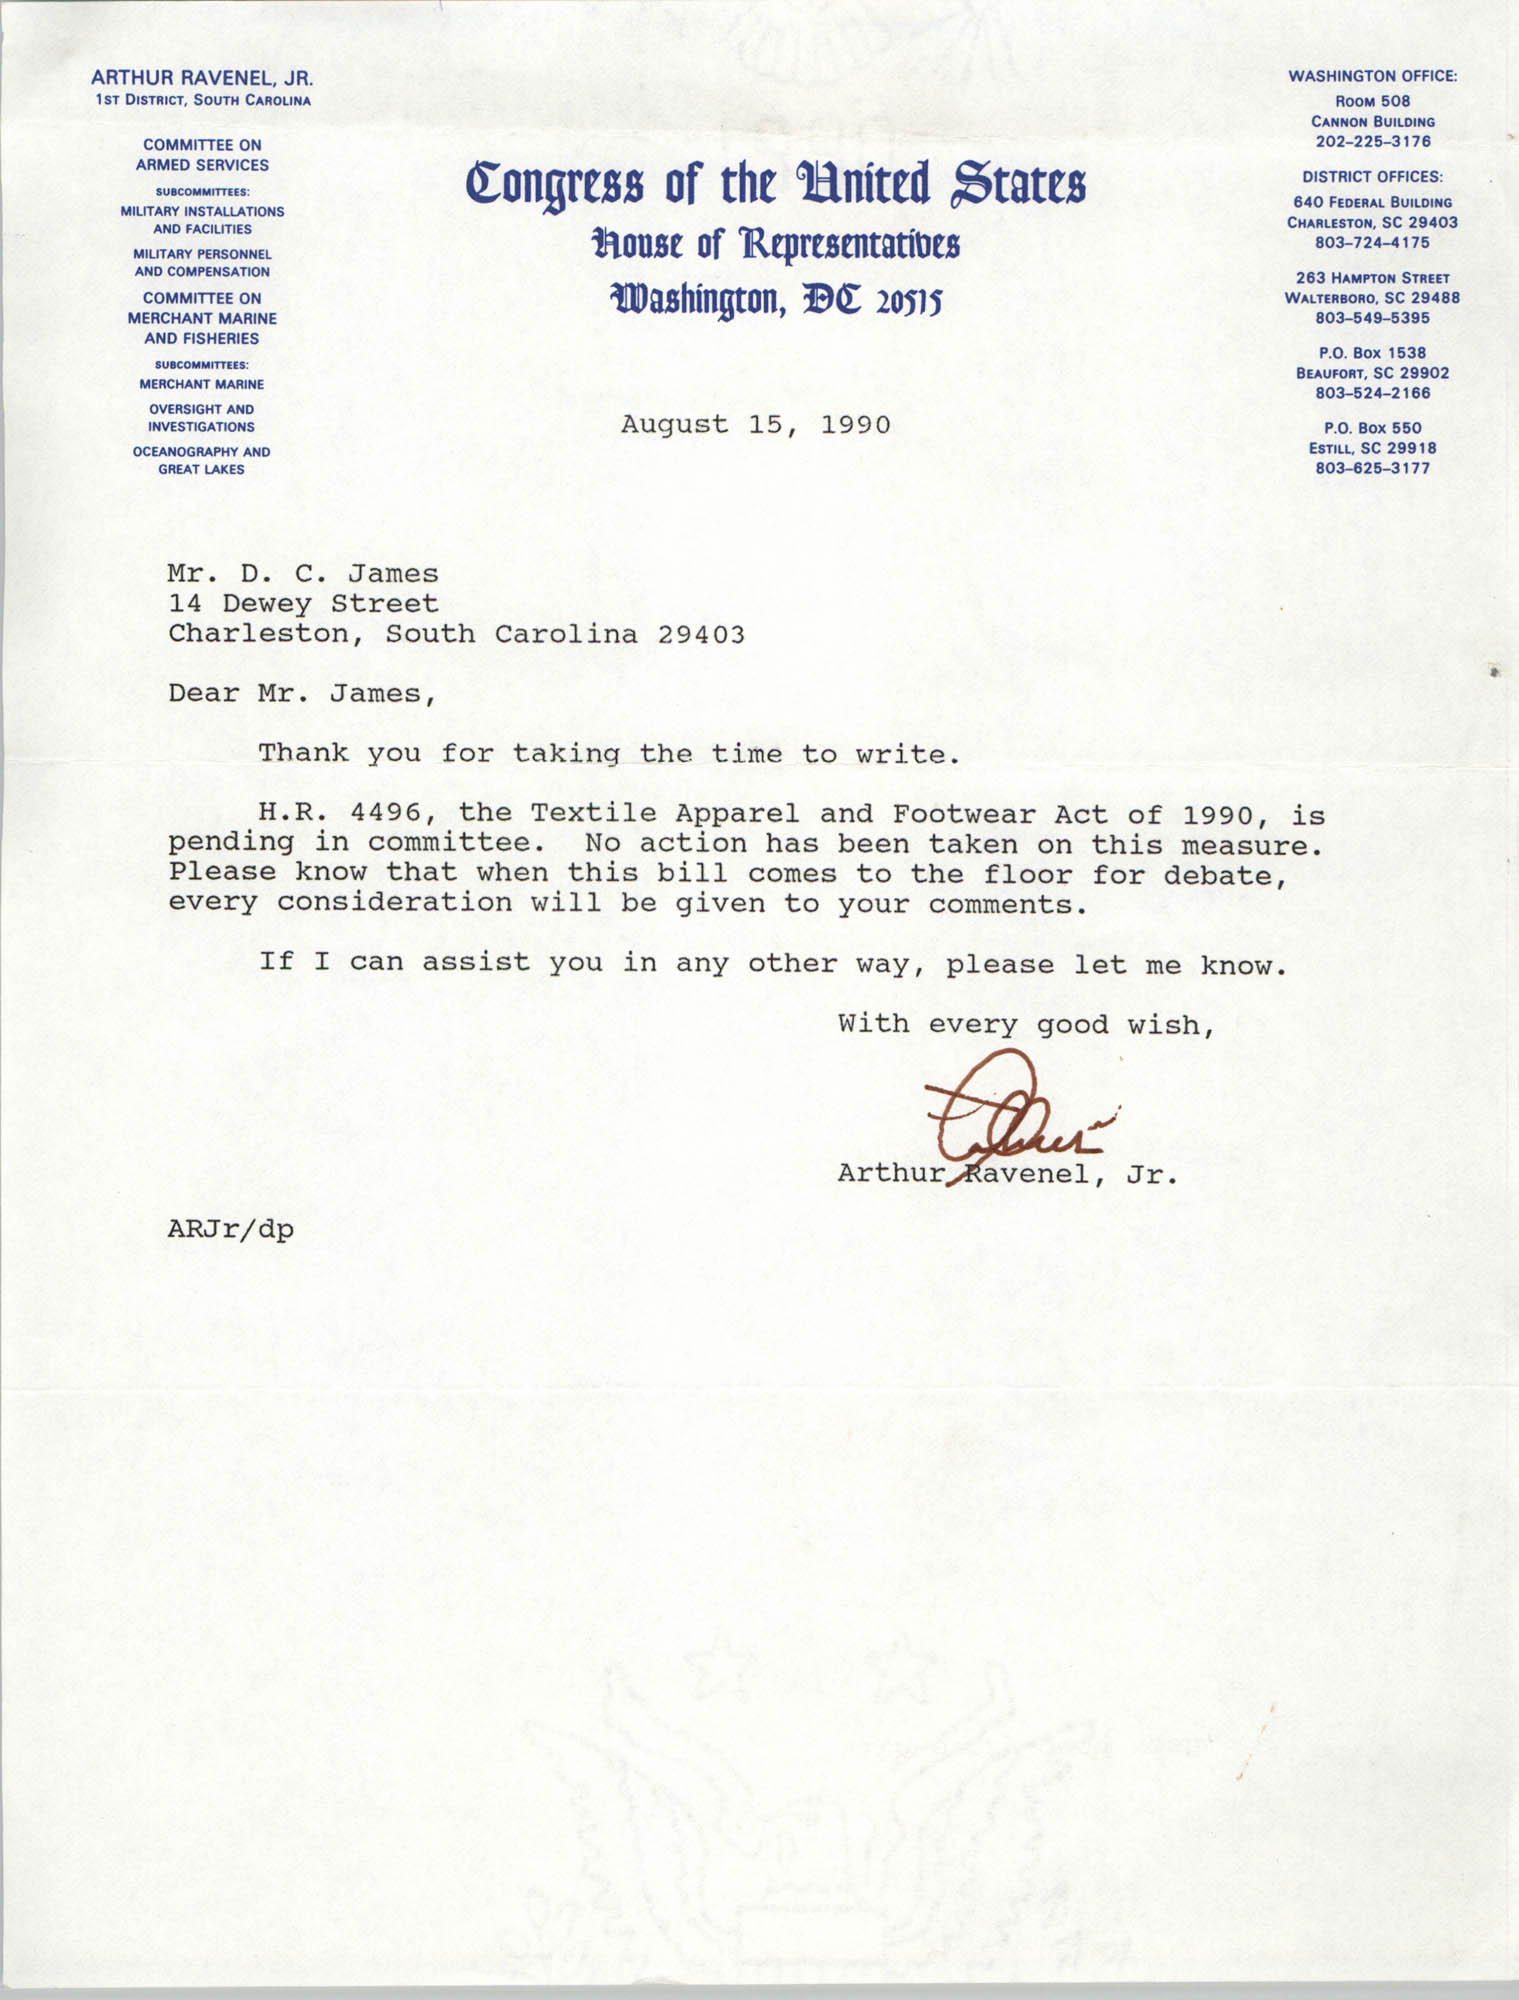 Letter from Arthur Ravenel, Jr. to Dwight C. James, August 15, 1990